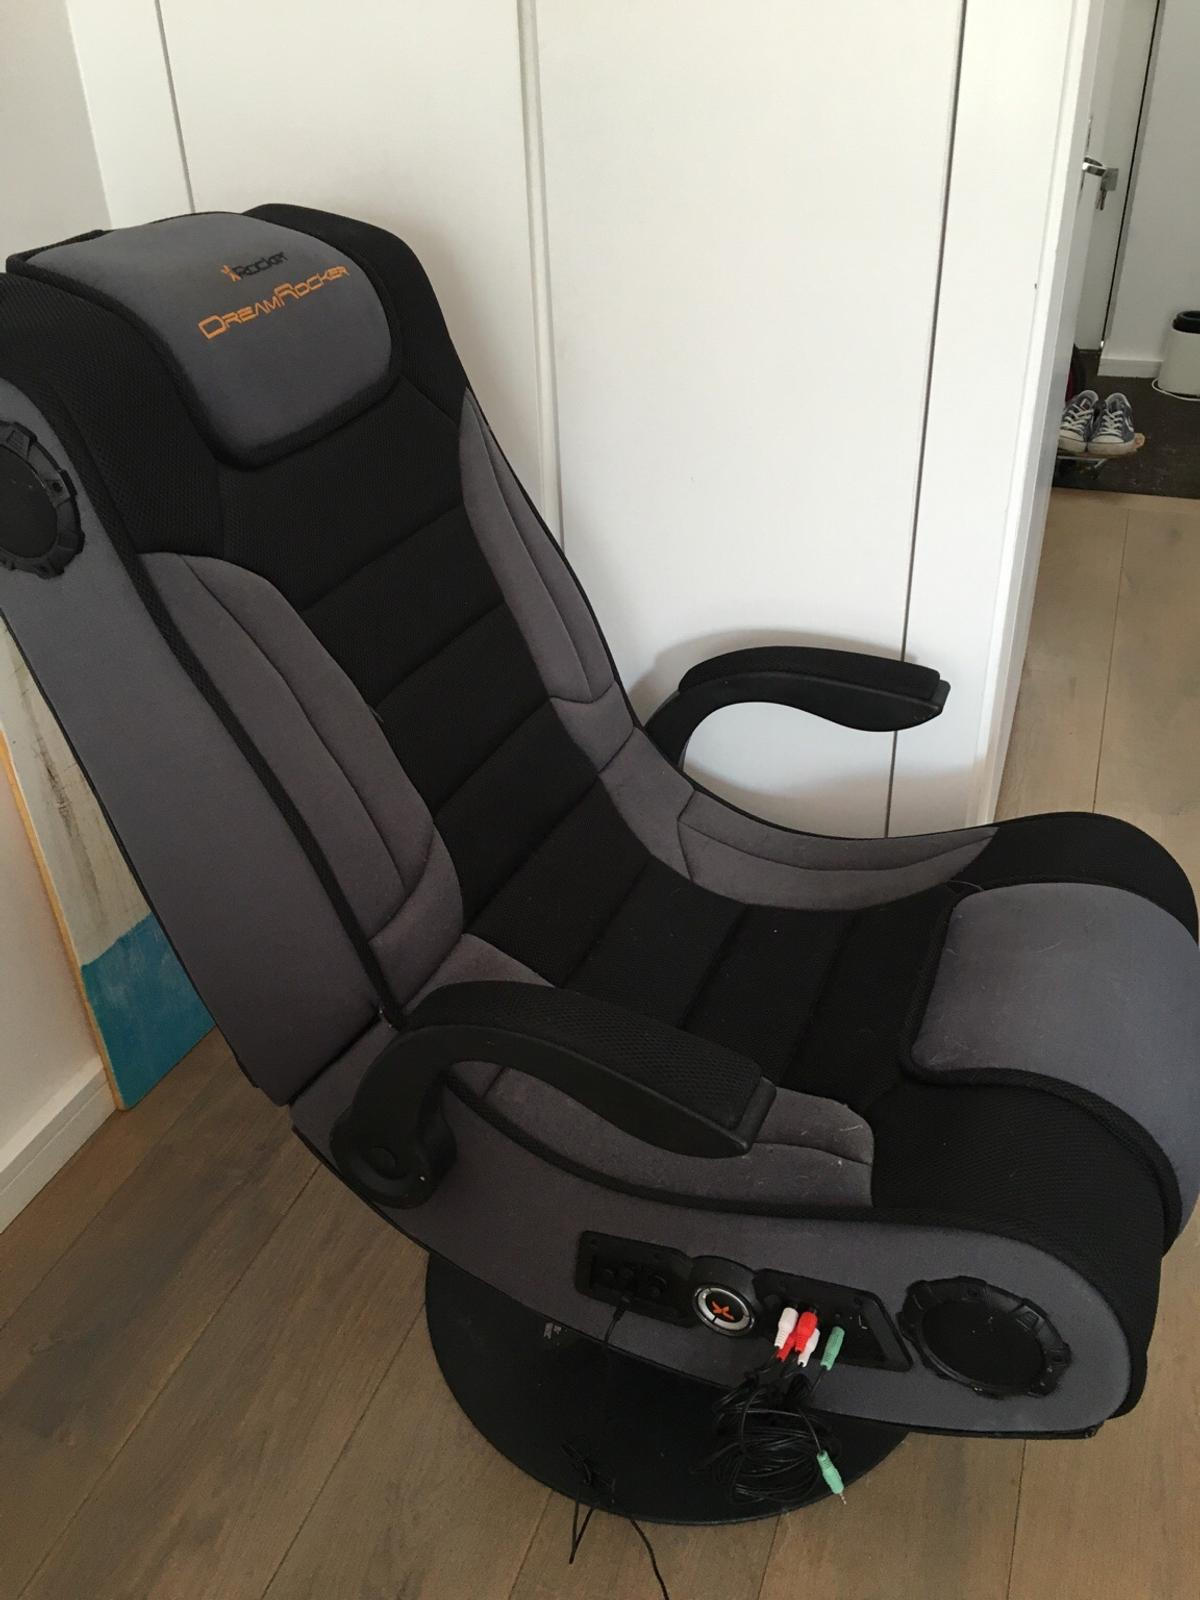 Tremendous Xdream Rocker Ultra Wireless Gaming Chair Caraccident5 Cool Chair Designs And Ideas Caraccident5Info